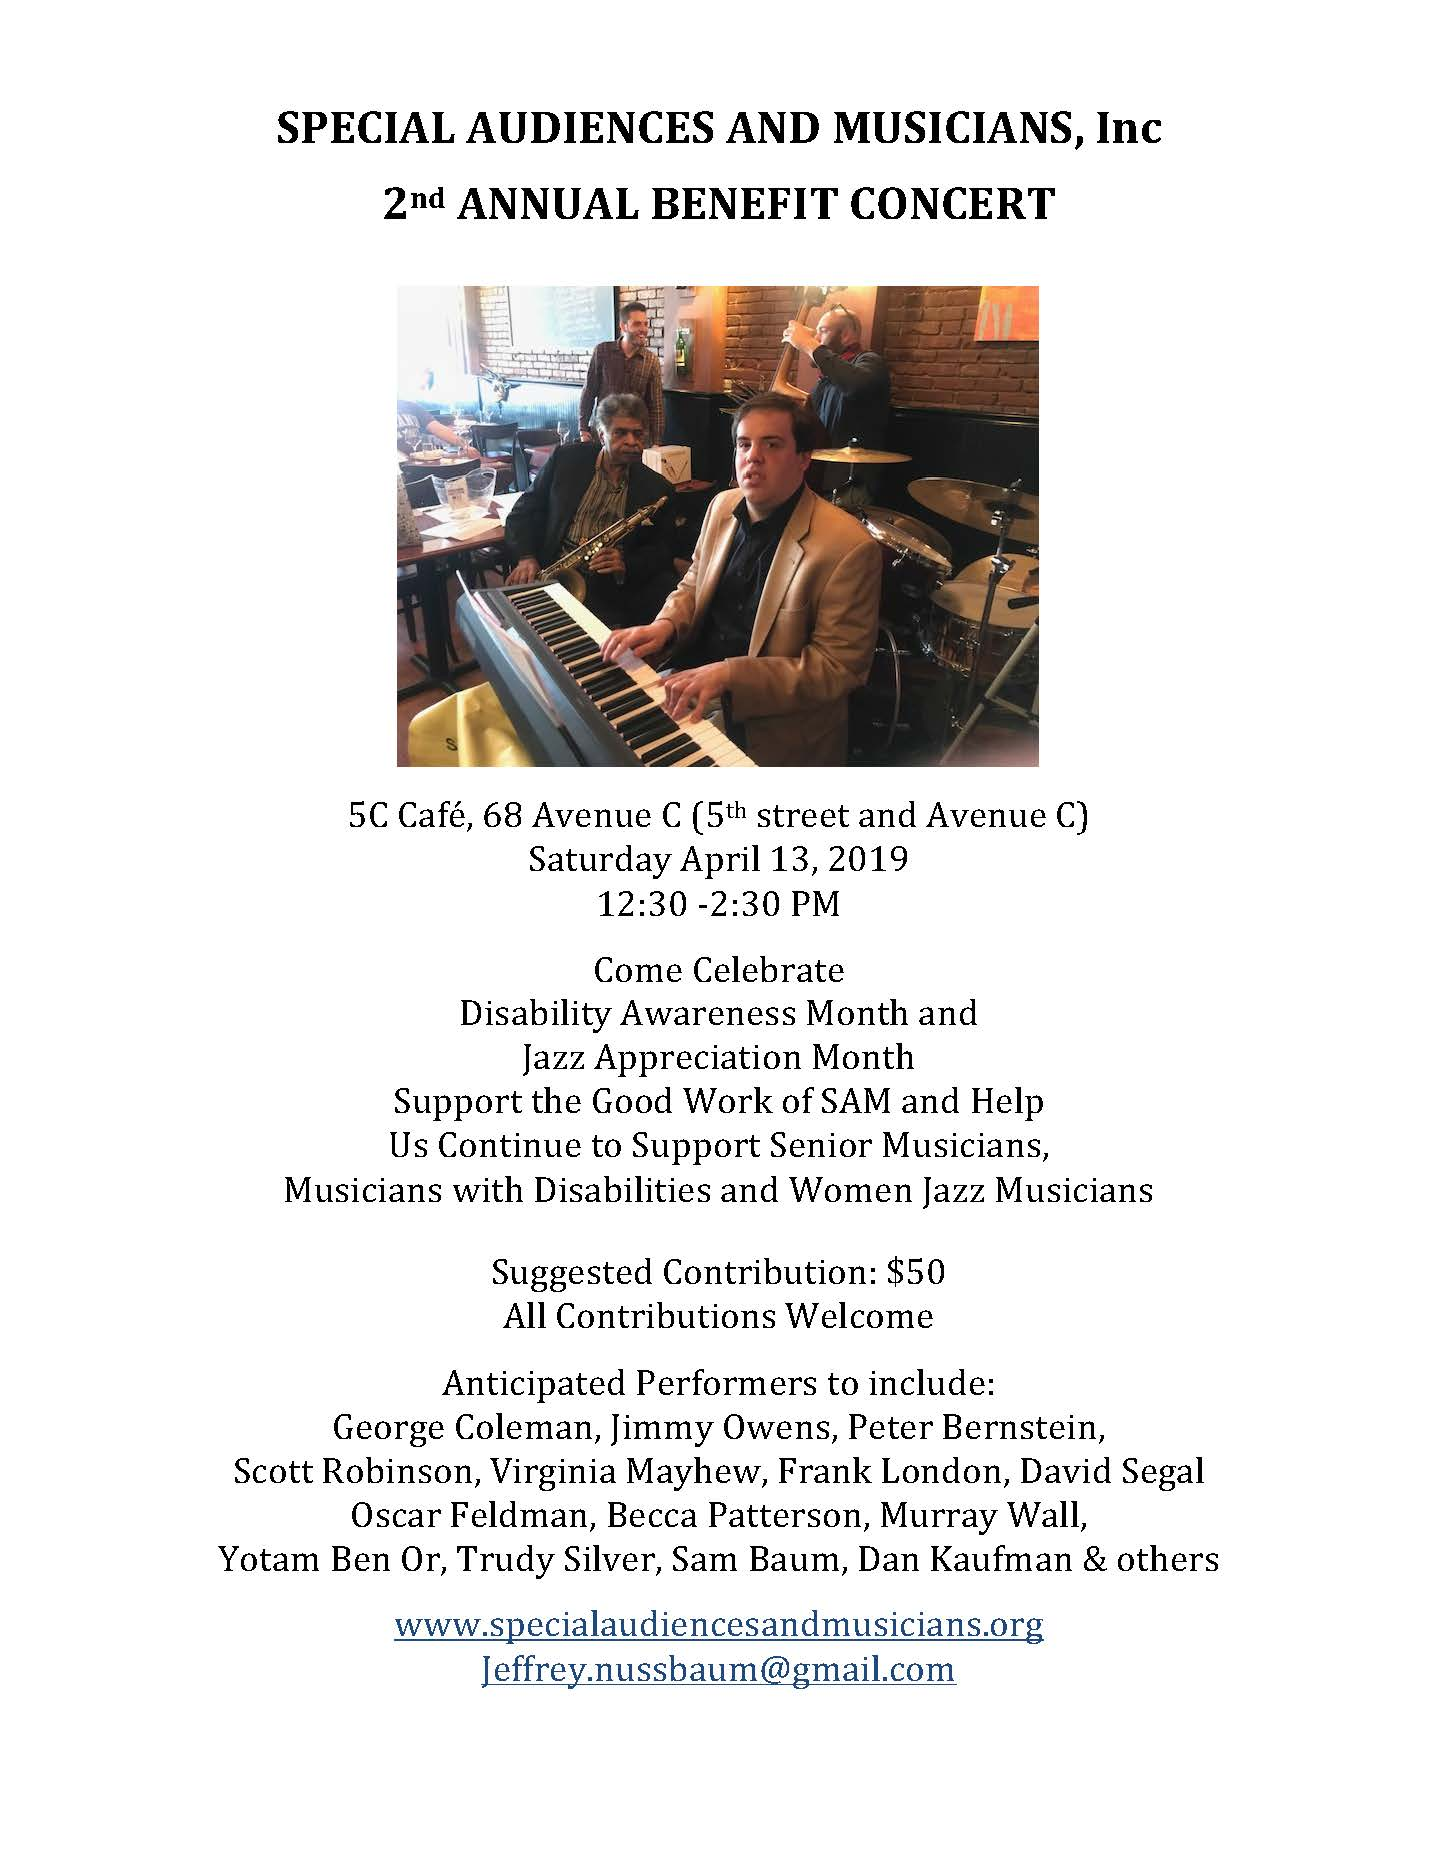 Special Audiences And Musicians Benefit Concert